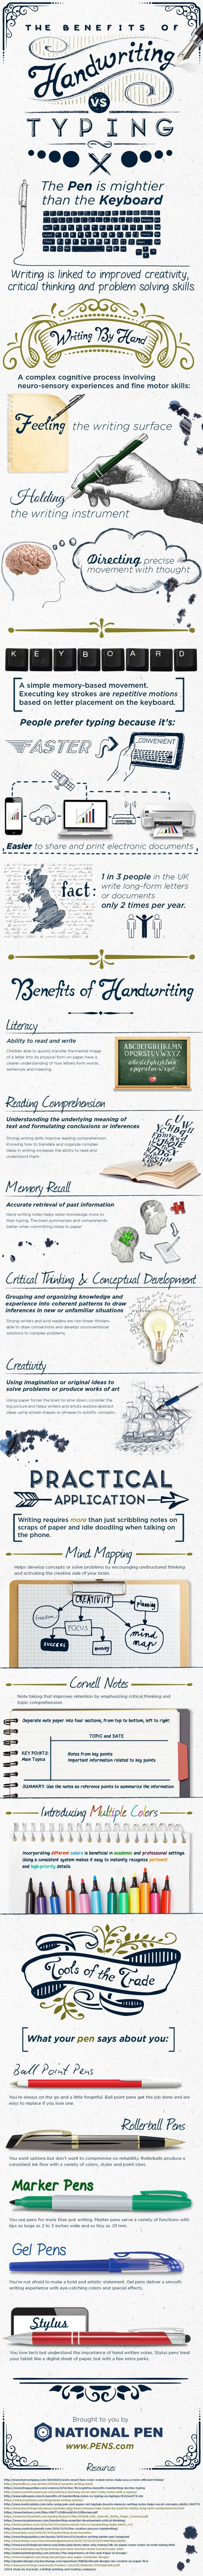 The debate over hand writing important notes versus typing them is one we've hit on before, but this graphic lays out all of the data clearly, and even offers some tips on choosing a writing implement based on the type of notes you're taking.